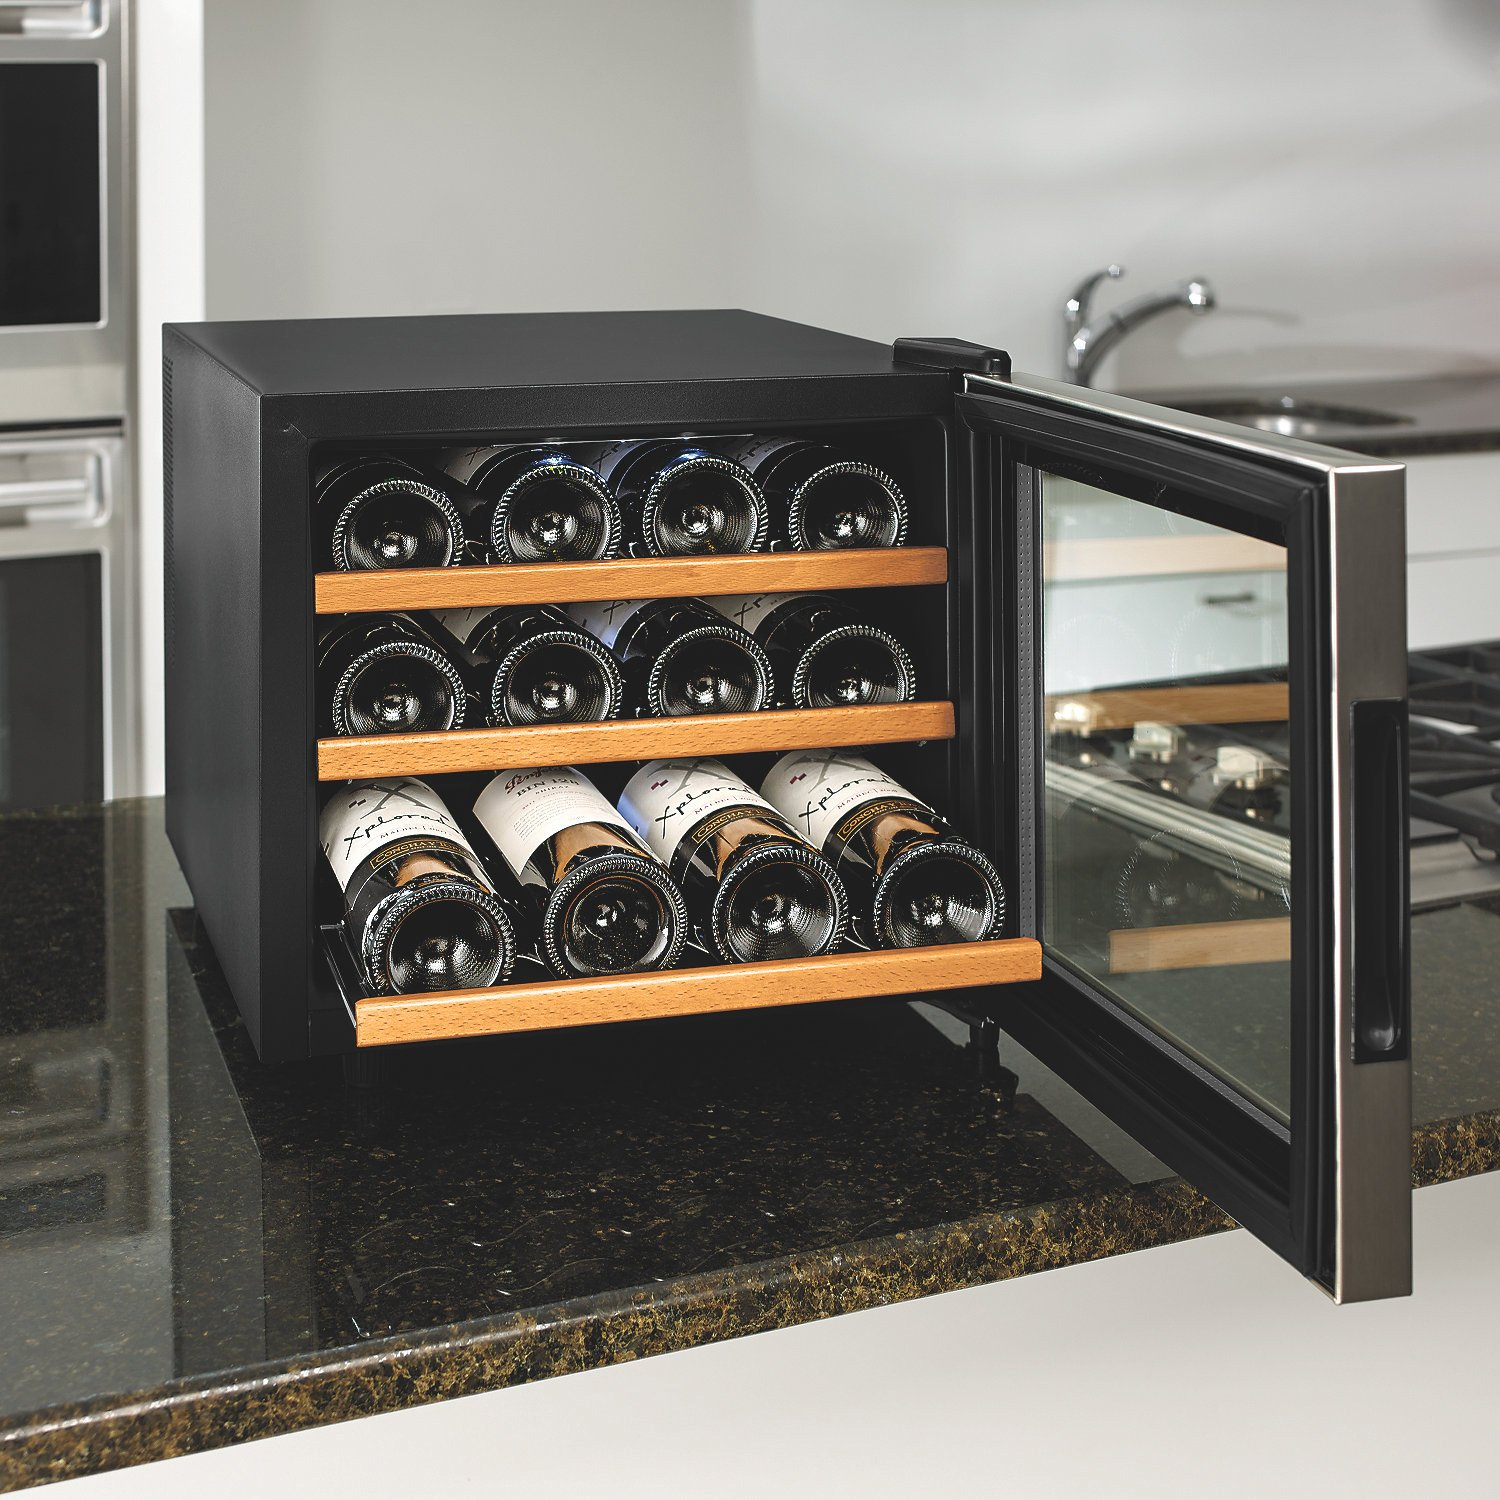 Wine Enthusiast 272 02 13W Stainless Steel/Wood Shelves Silent 12-Bottle Wine Cooler, Stainless by Wine Enthusiast (Image #2)